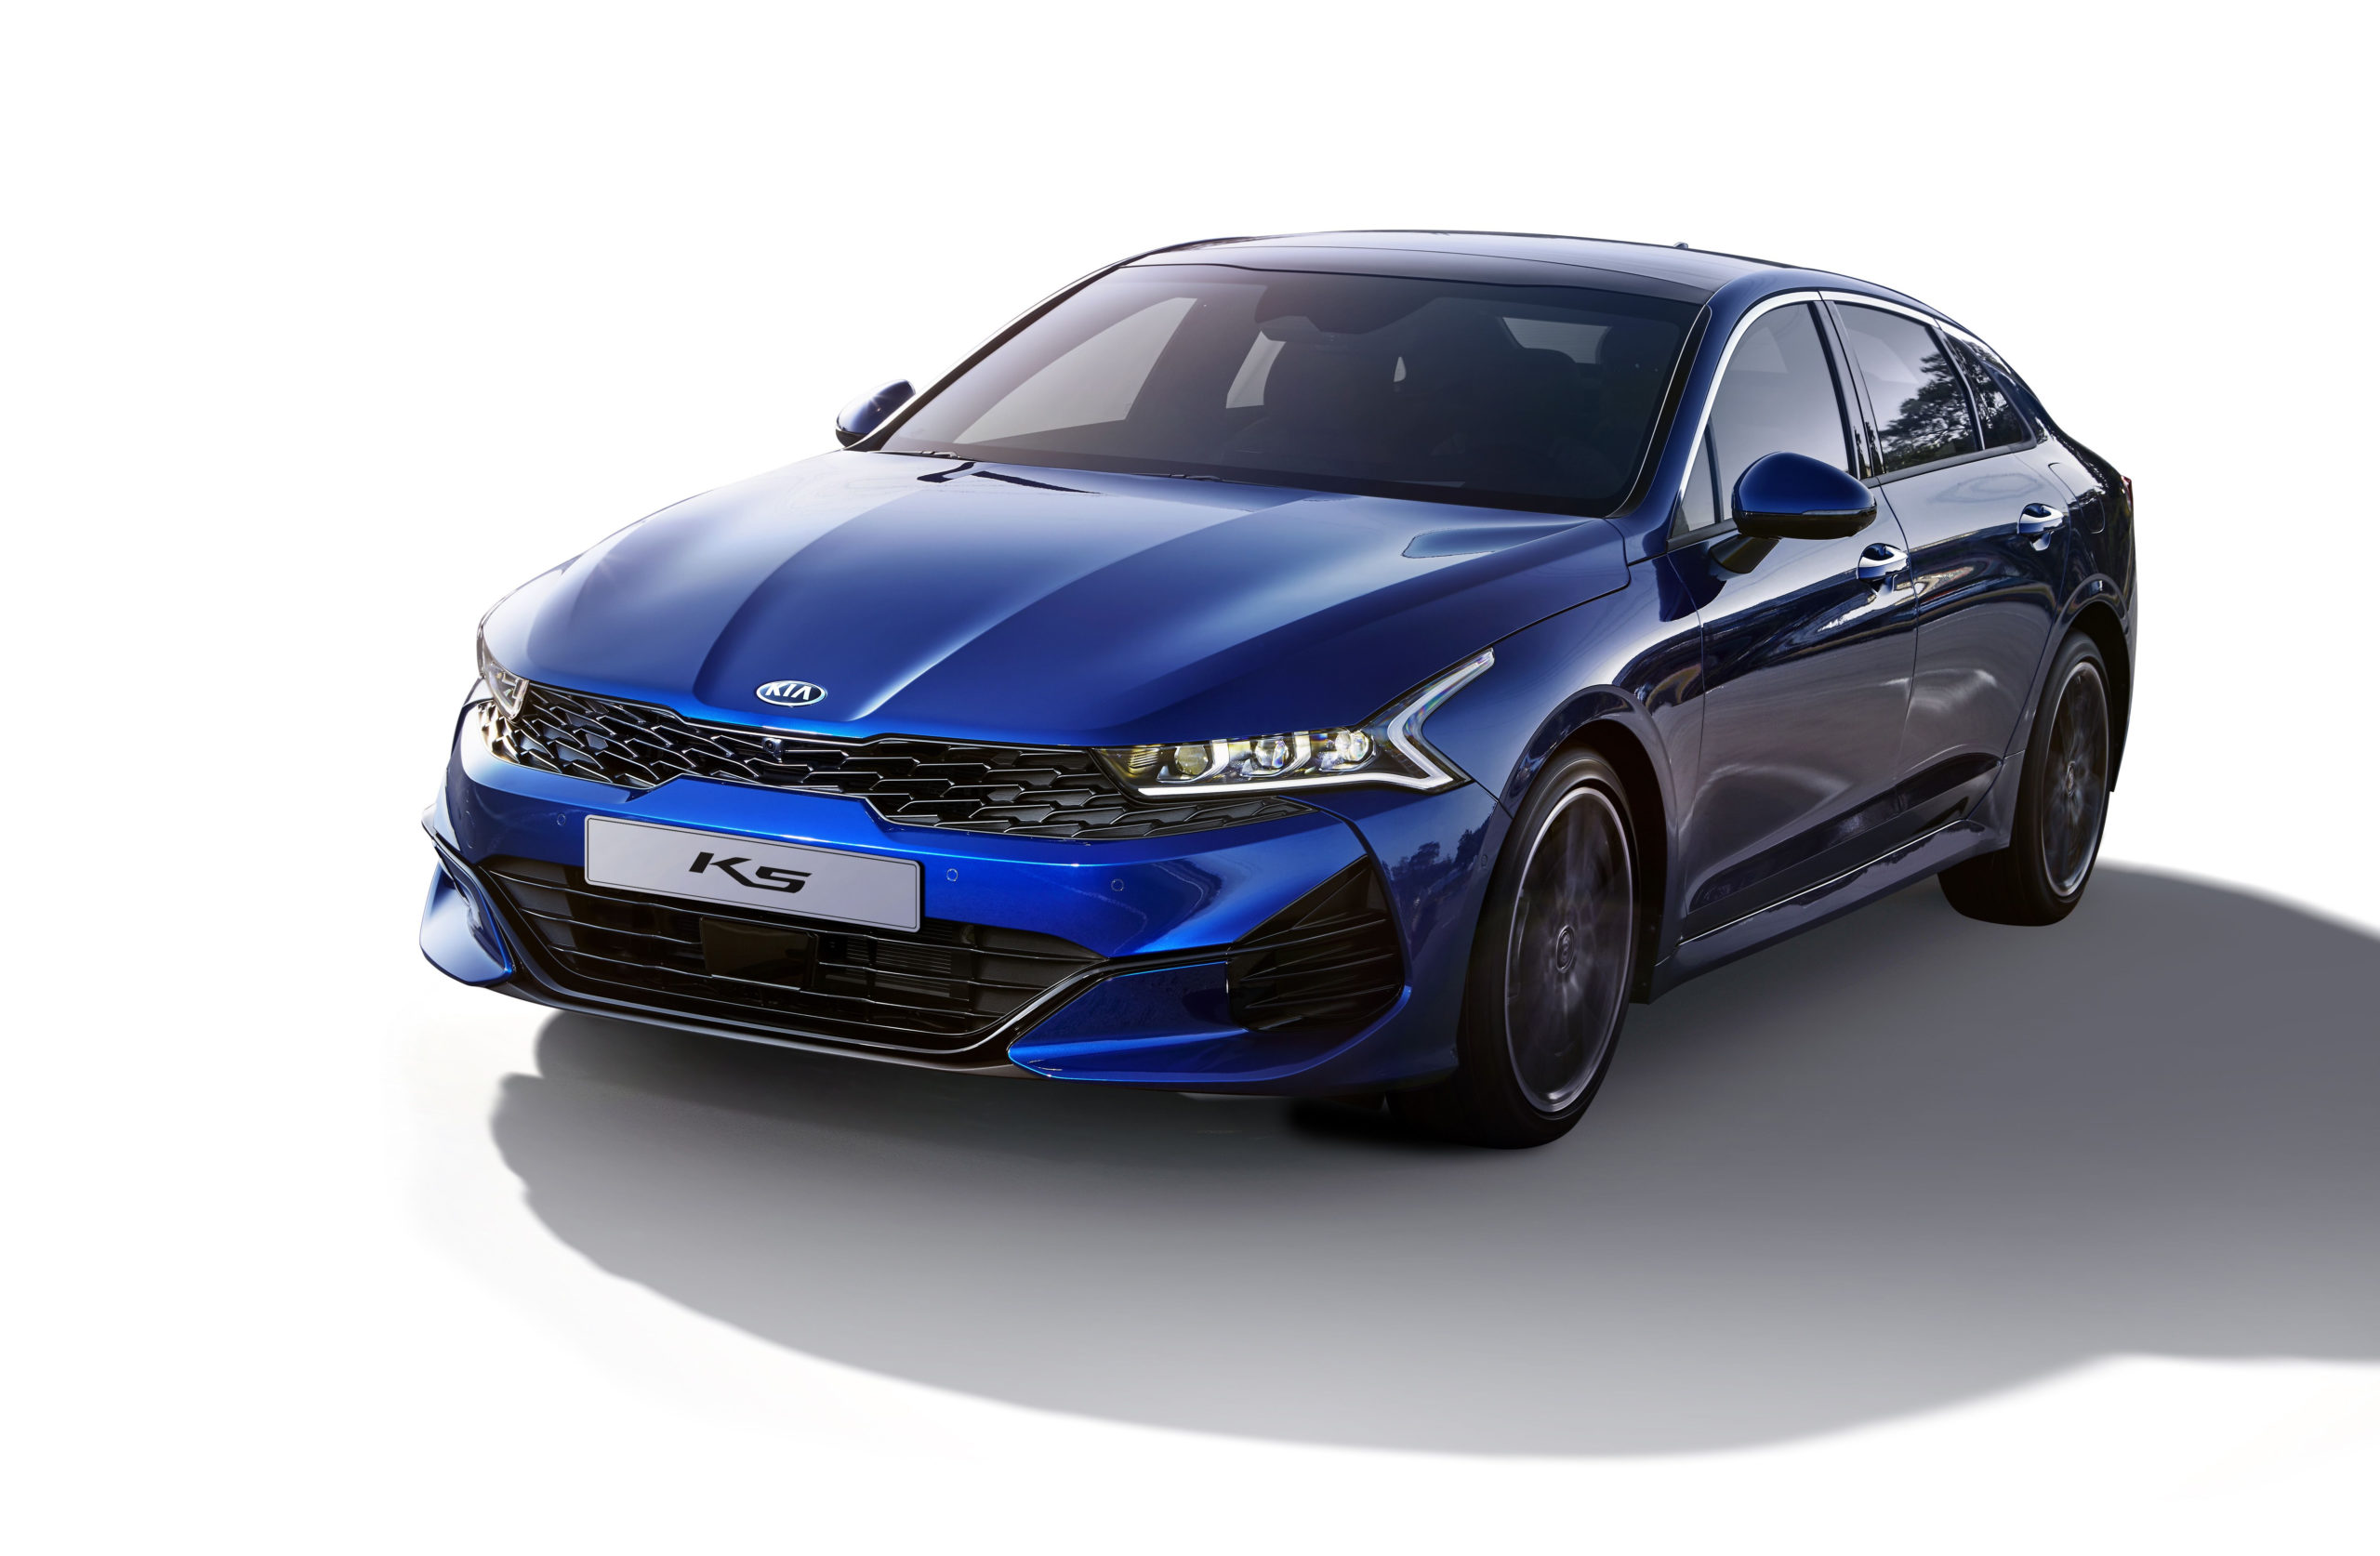 2021 Kia Optima Looks Sharp, Gets Awd - 2022 Kia Optima Fe Interior Update, Transmission Changes